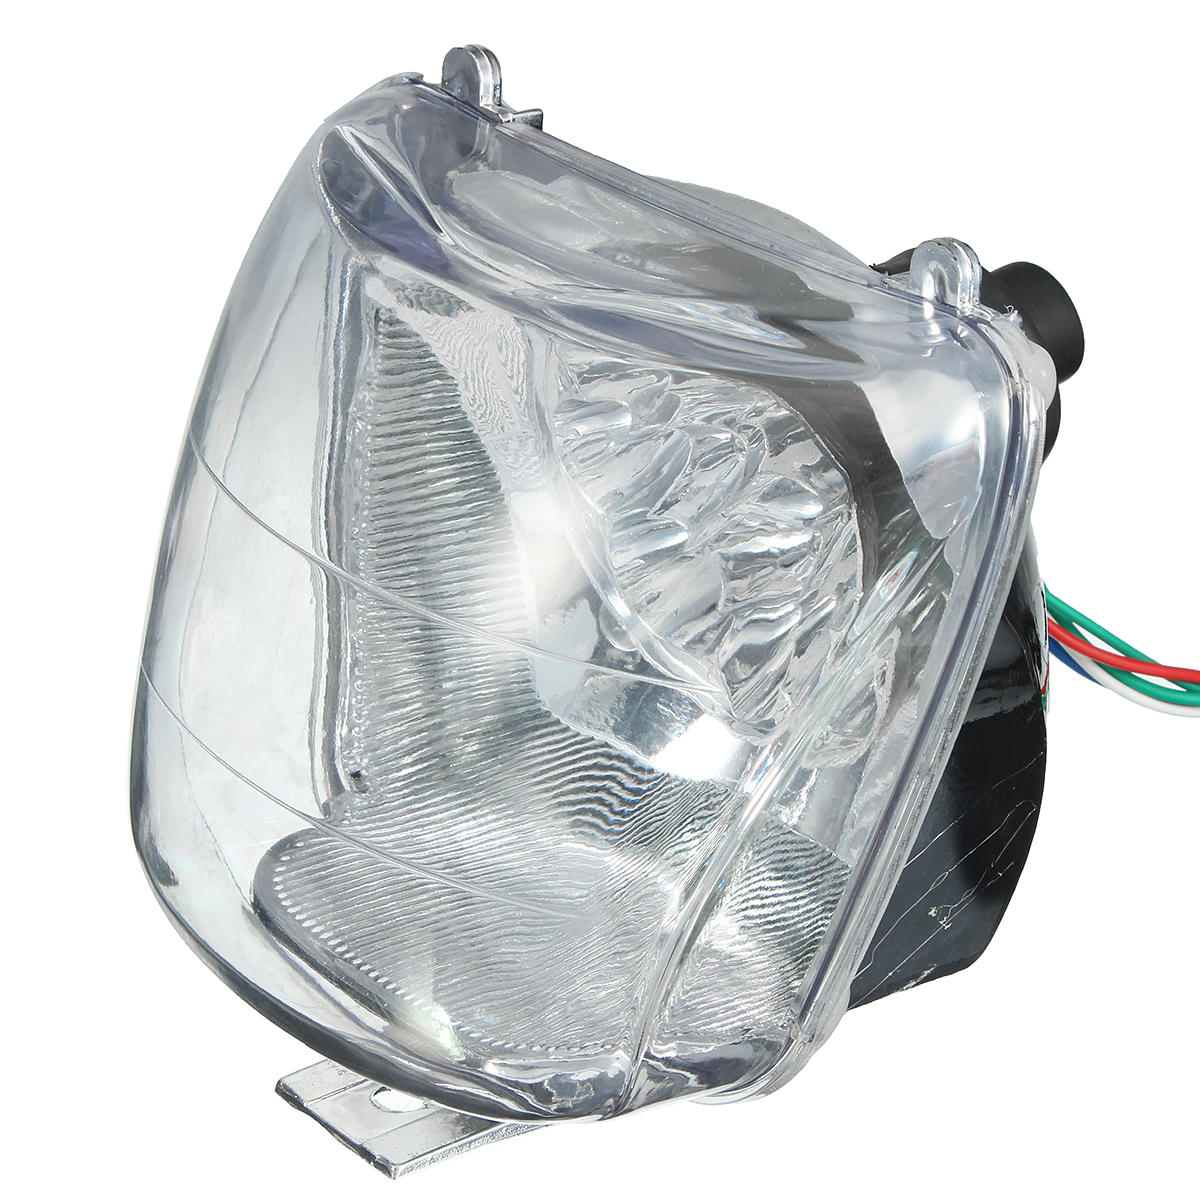 12v Led Quad 12v 35w Front Light Led Headlight For 50cc 70cc 90cc 110cc 125cc Mini Atv Quad Bike Buggy